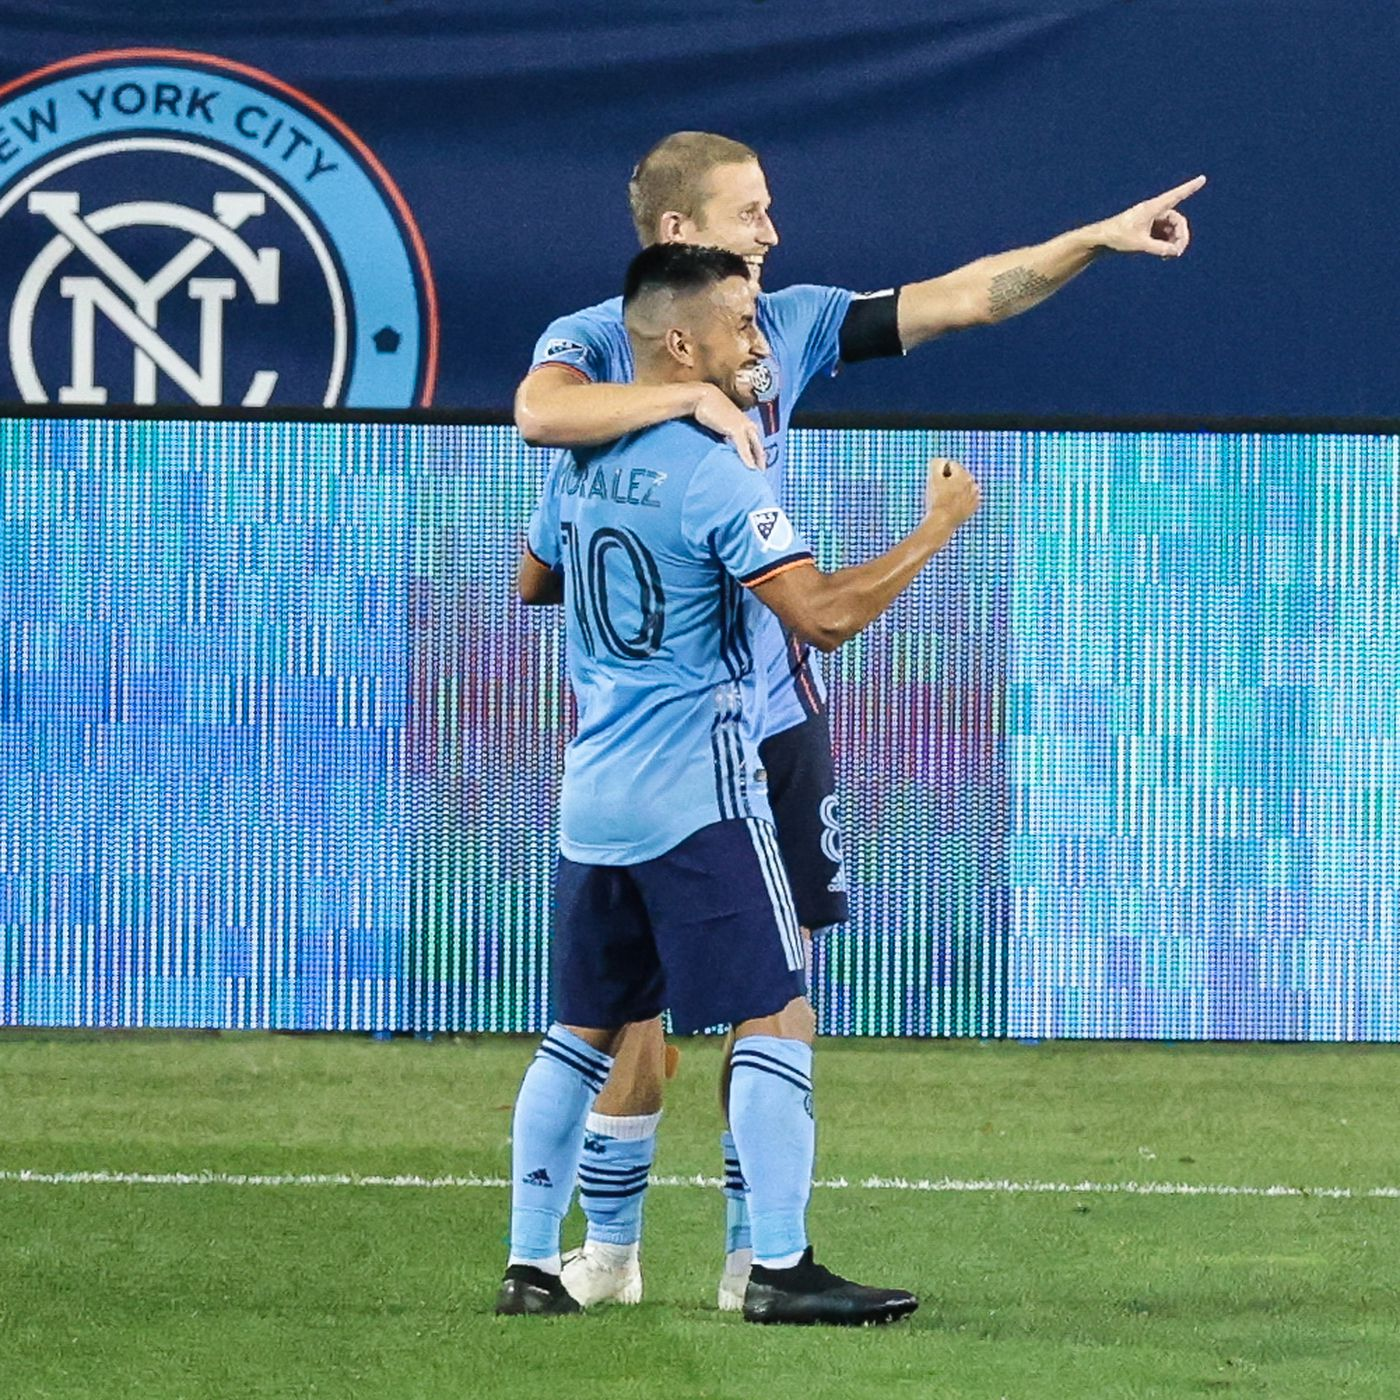 Nycfc Announces Phase 2 Of Mls Schedule Hudson River Blue